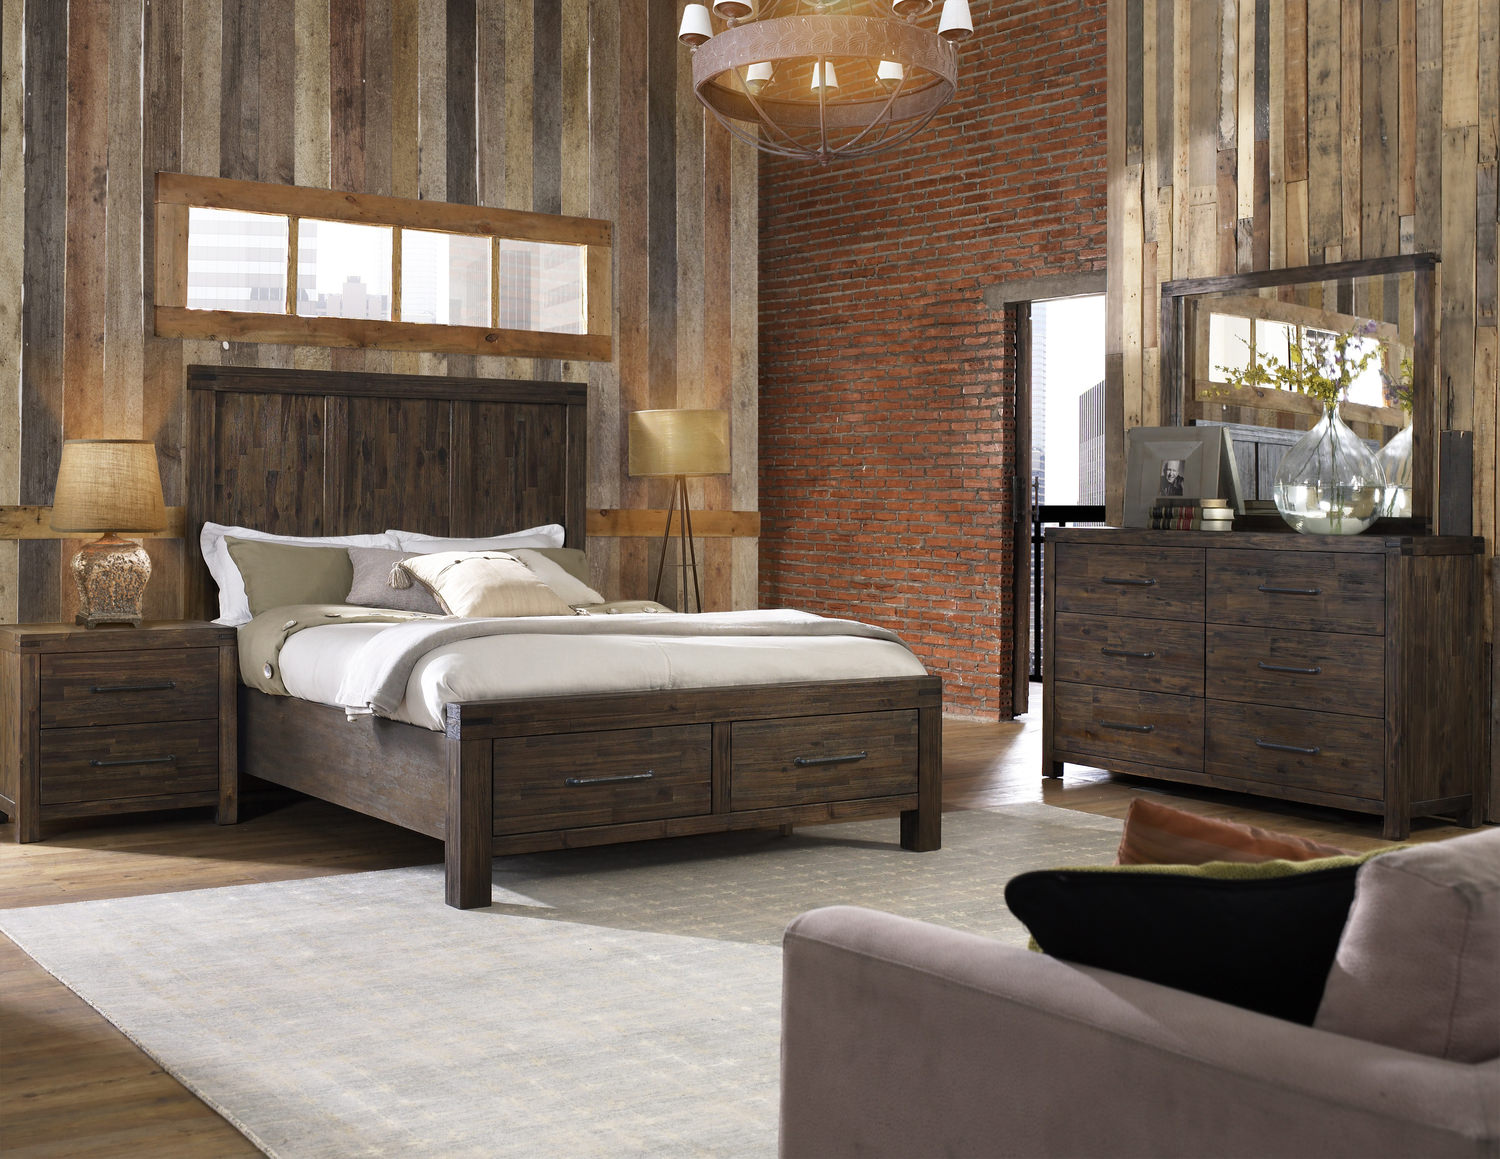 st croix bedroom suite by thomas cole | hom furniture